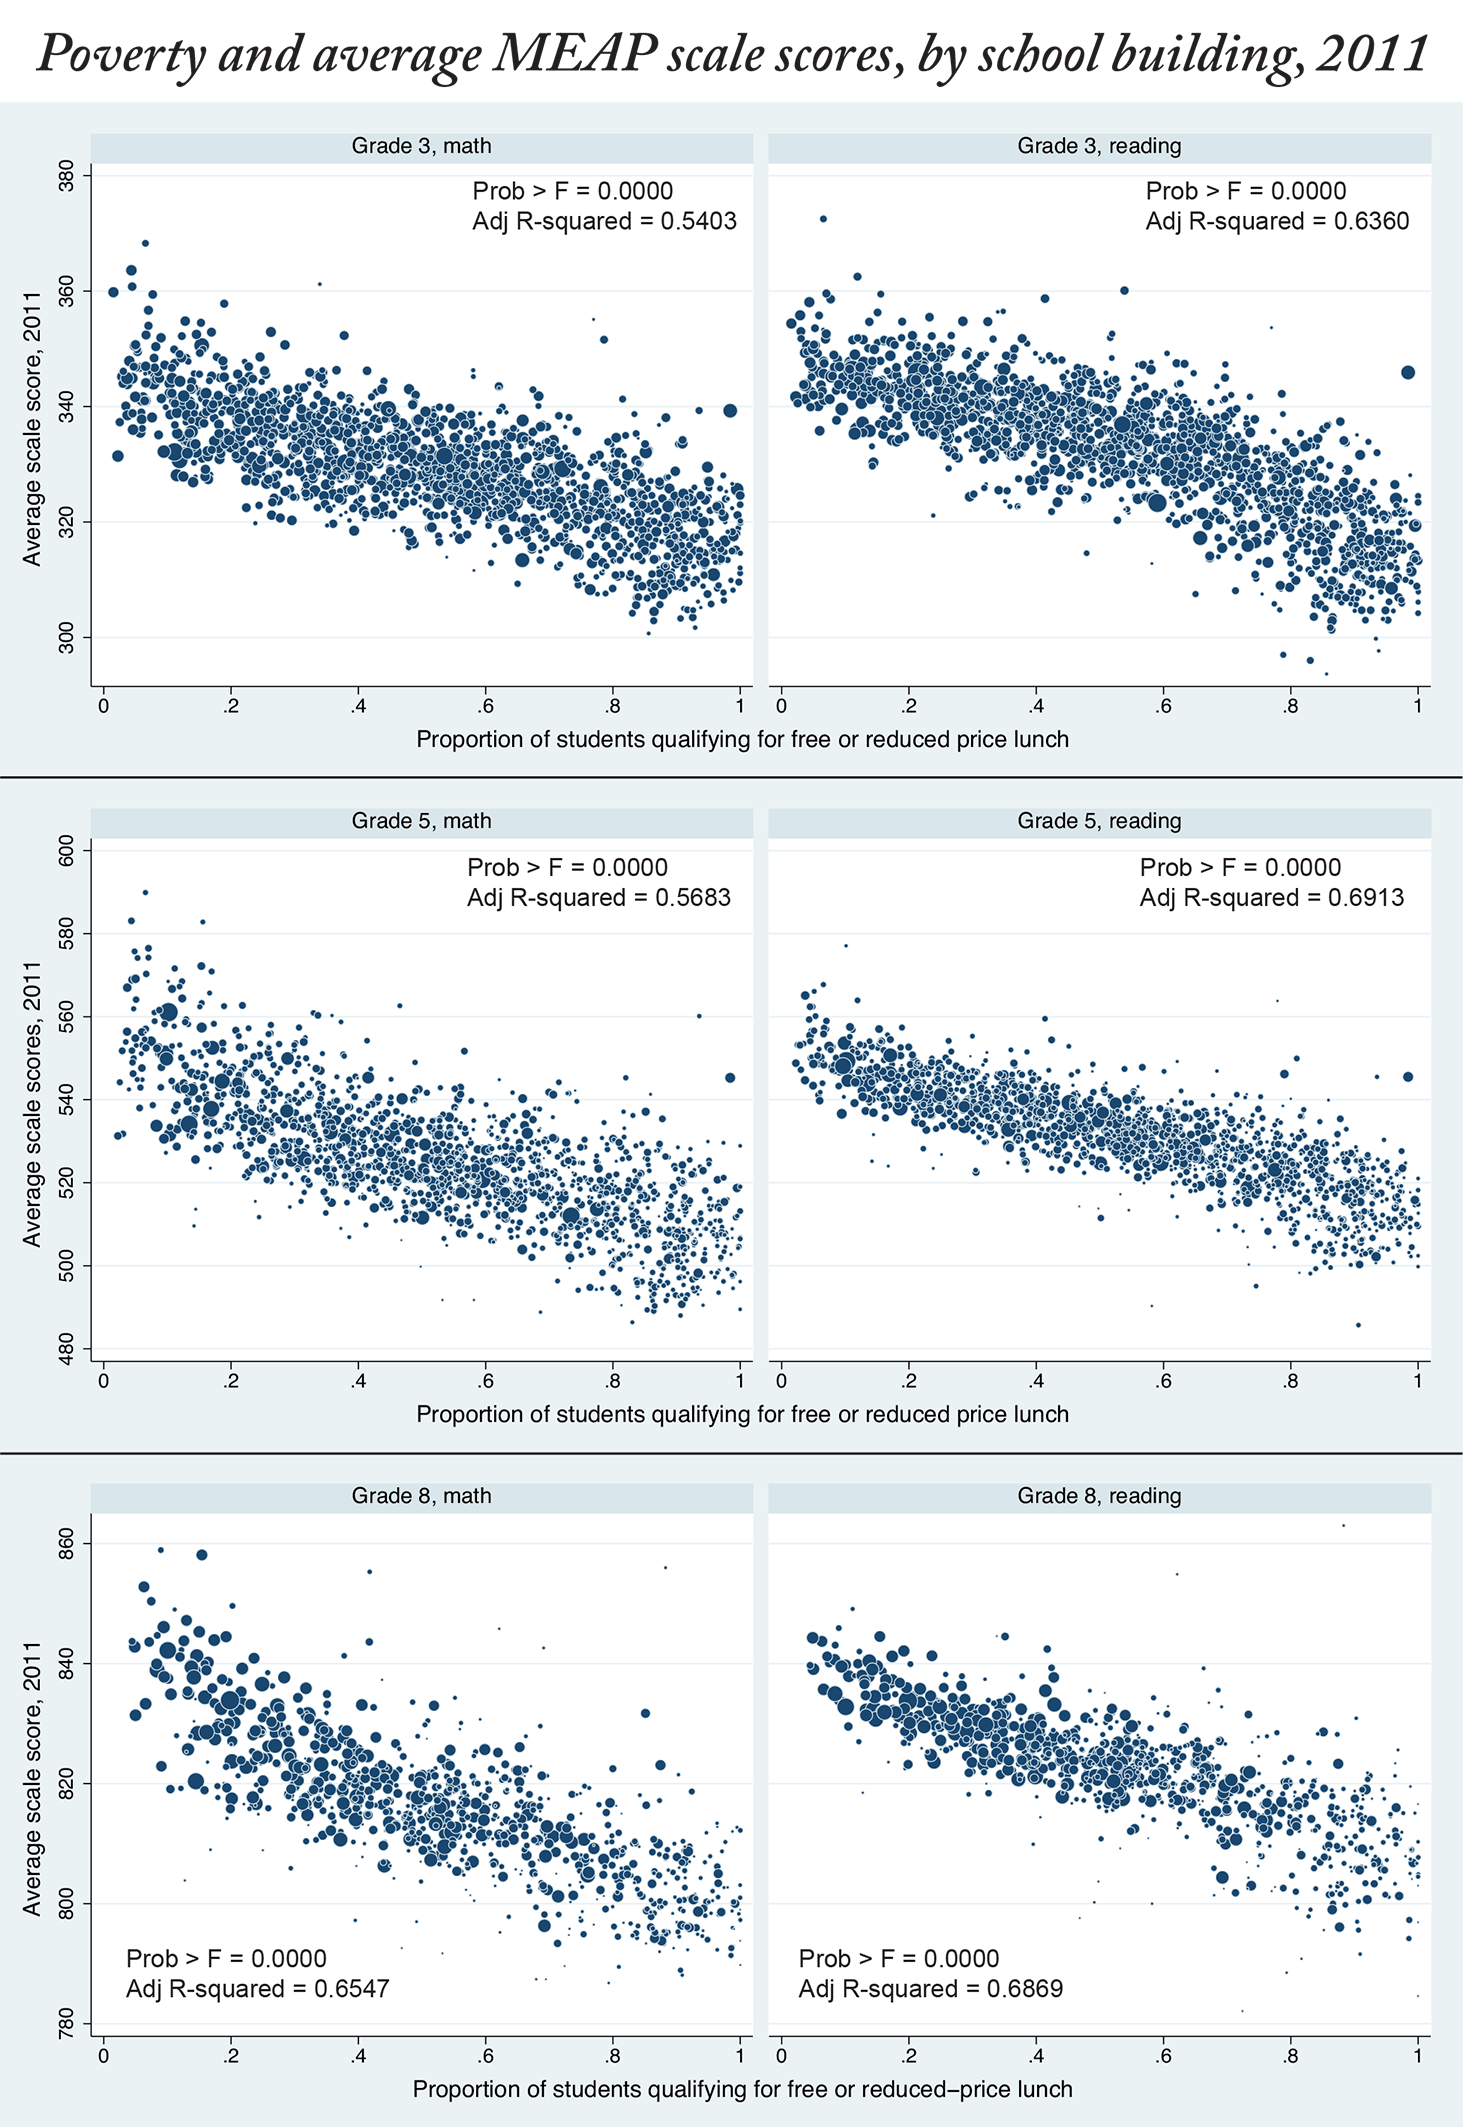 Correlation between poverty levels and school MEAP scores